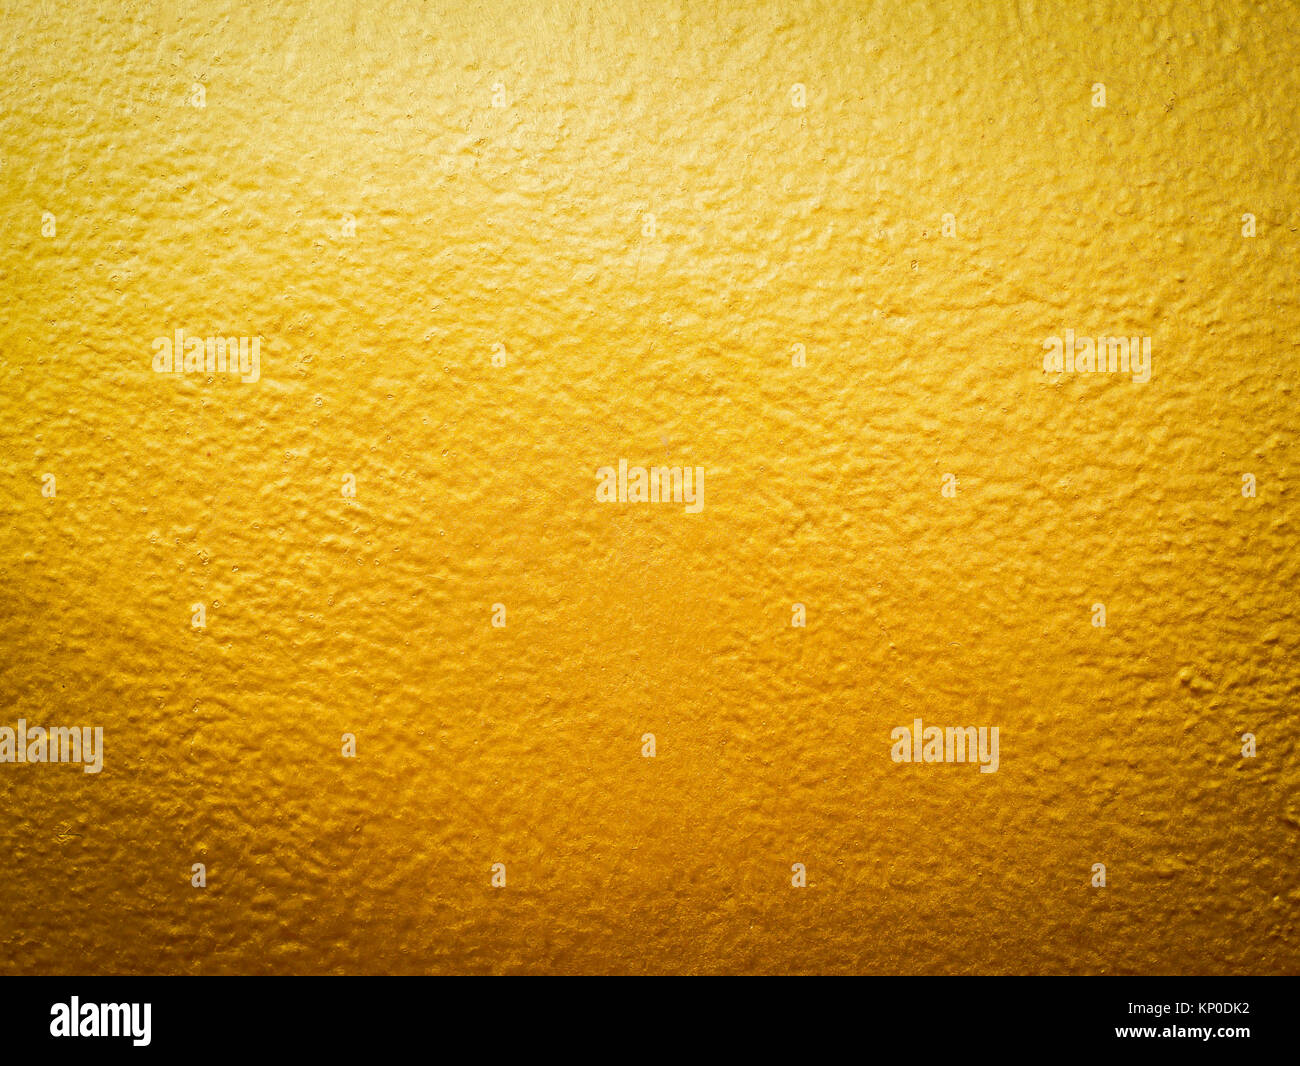 Gold Background Texture Easy to make beauty pretty copy spaces as contemporary backdrop design backdrop - Stock Image